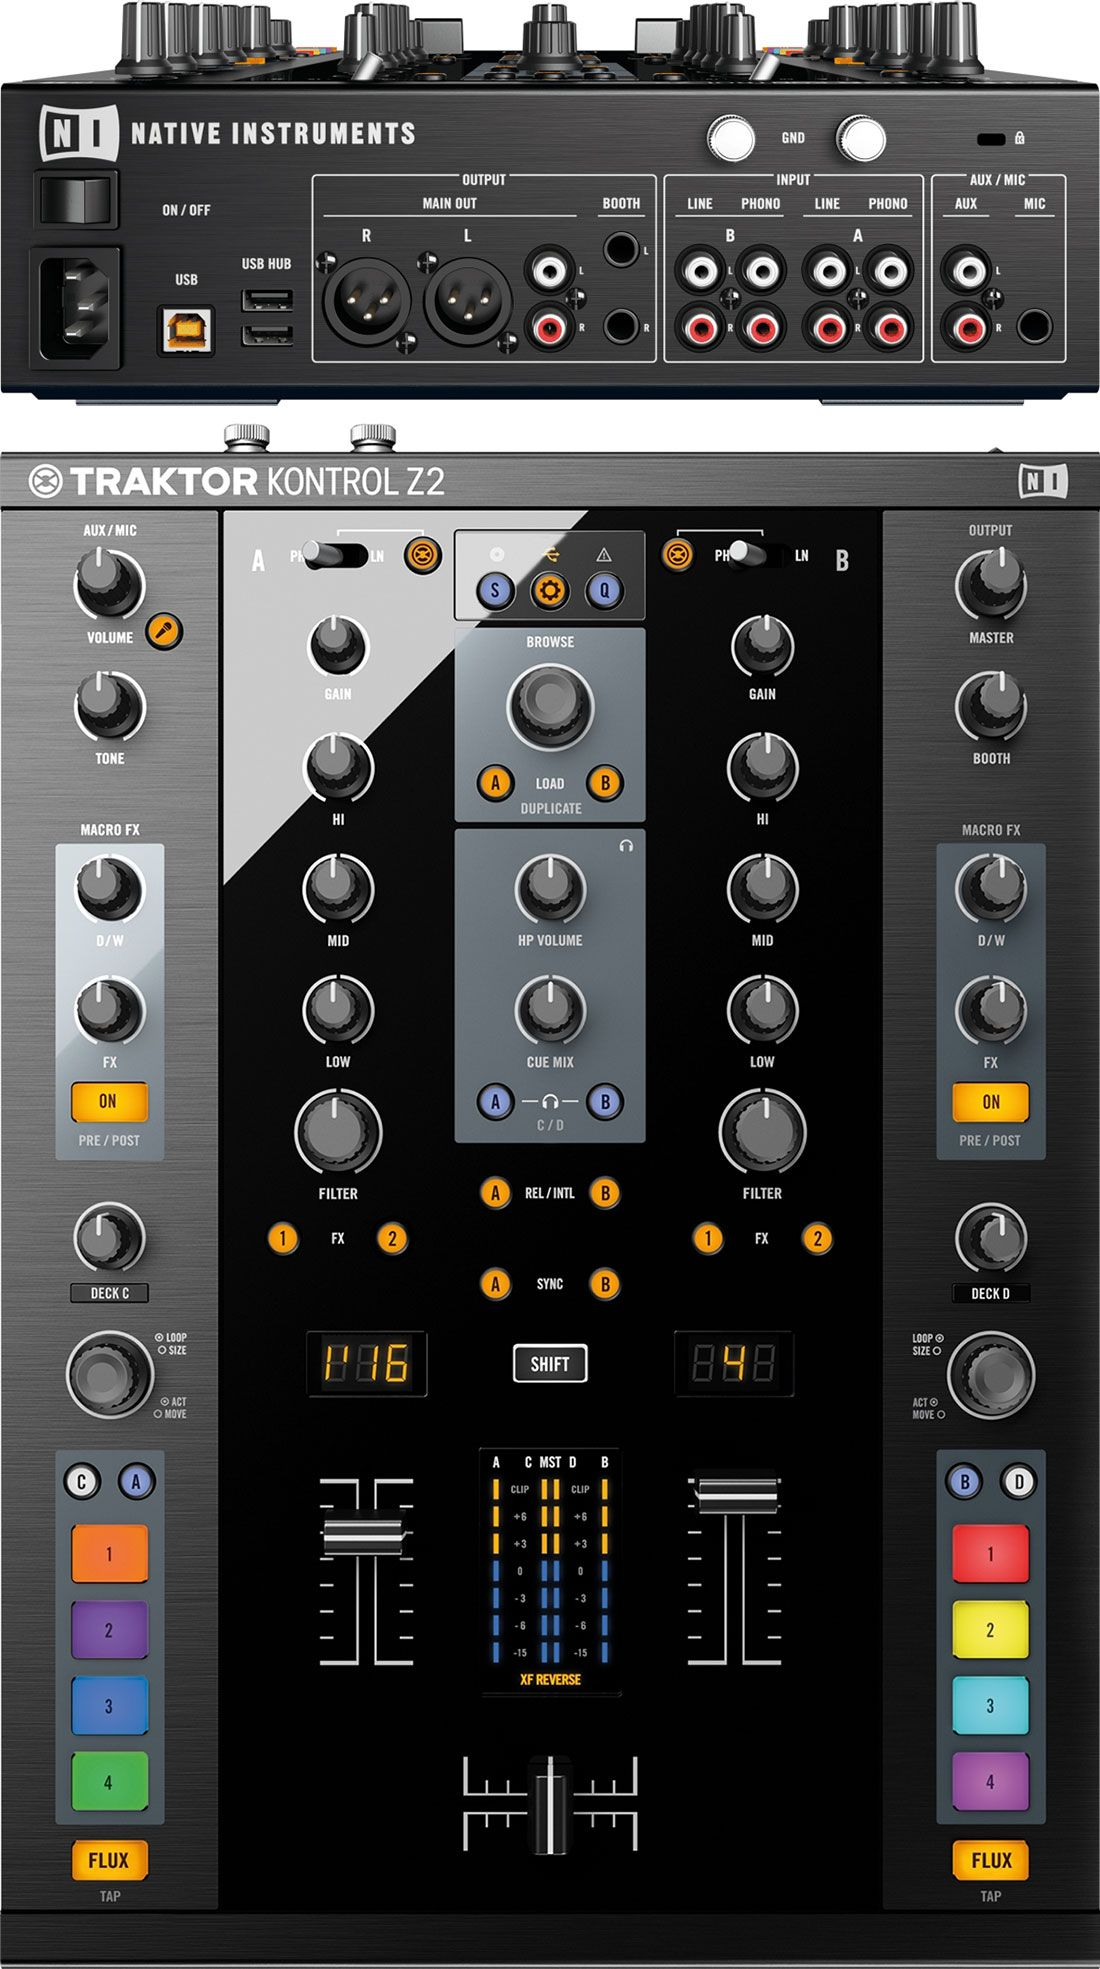 Best DJ Mixer - Native Instruments TRAKTOR KONTROL Z2